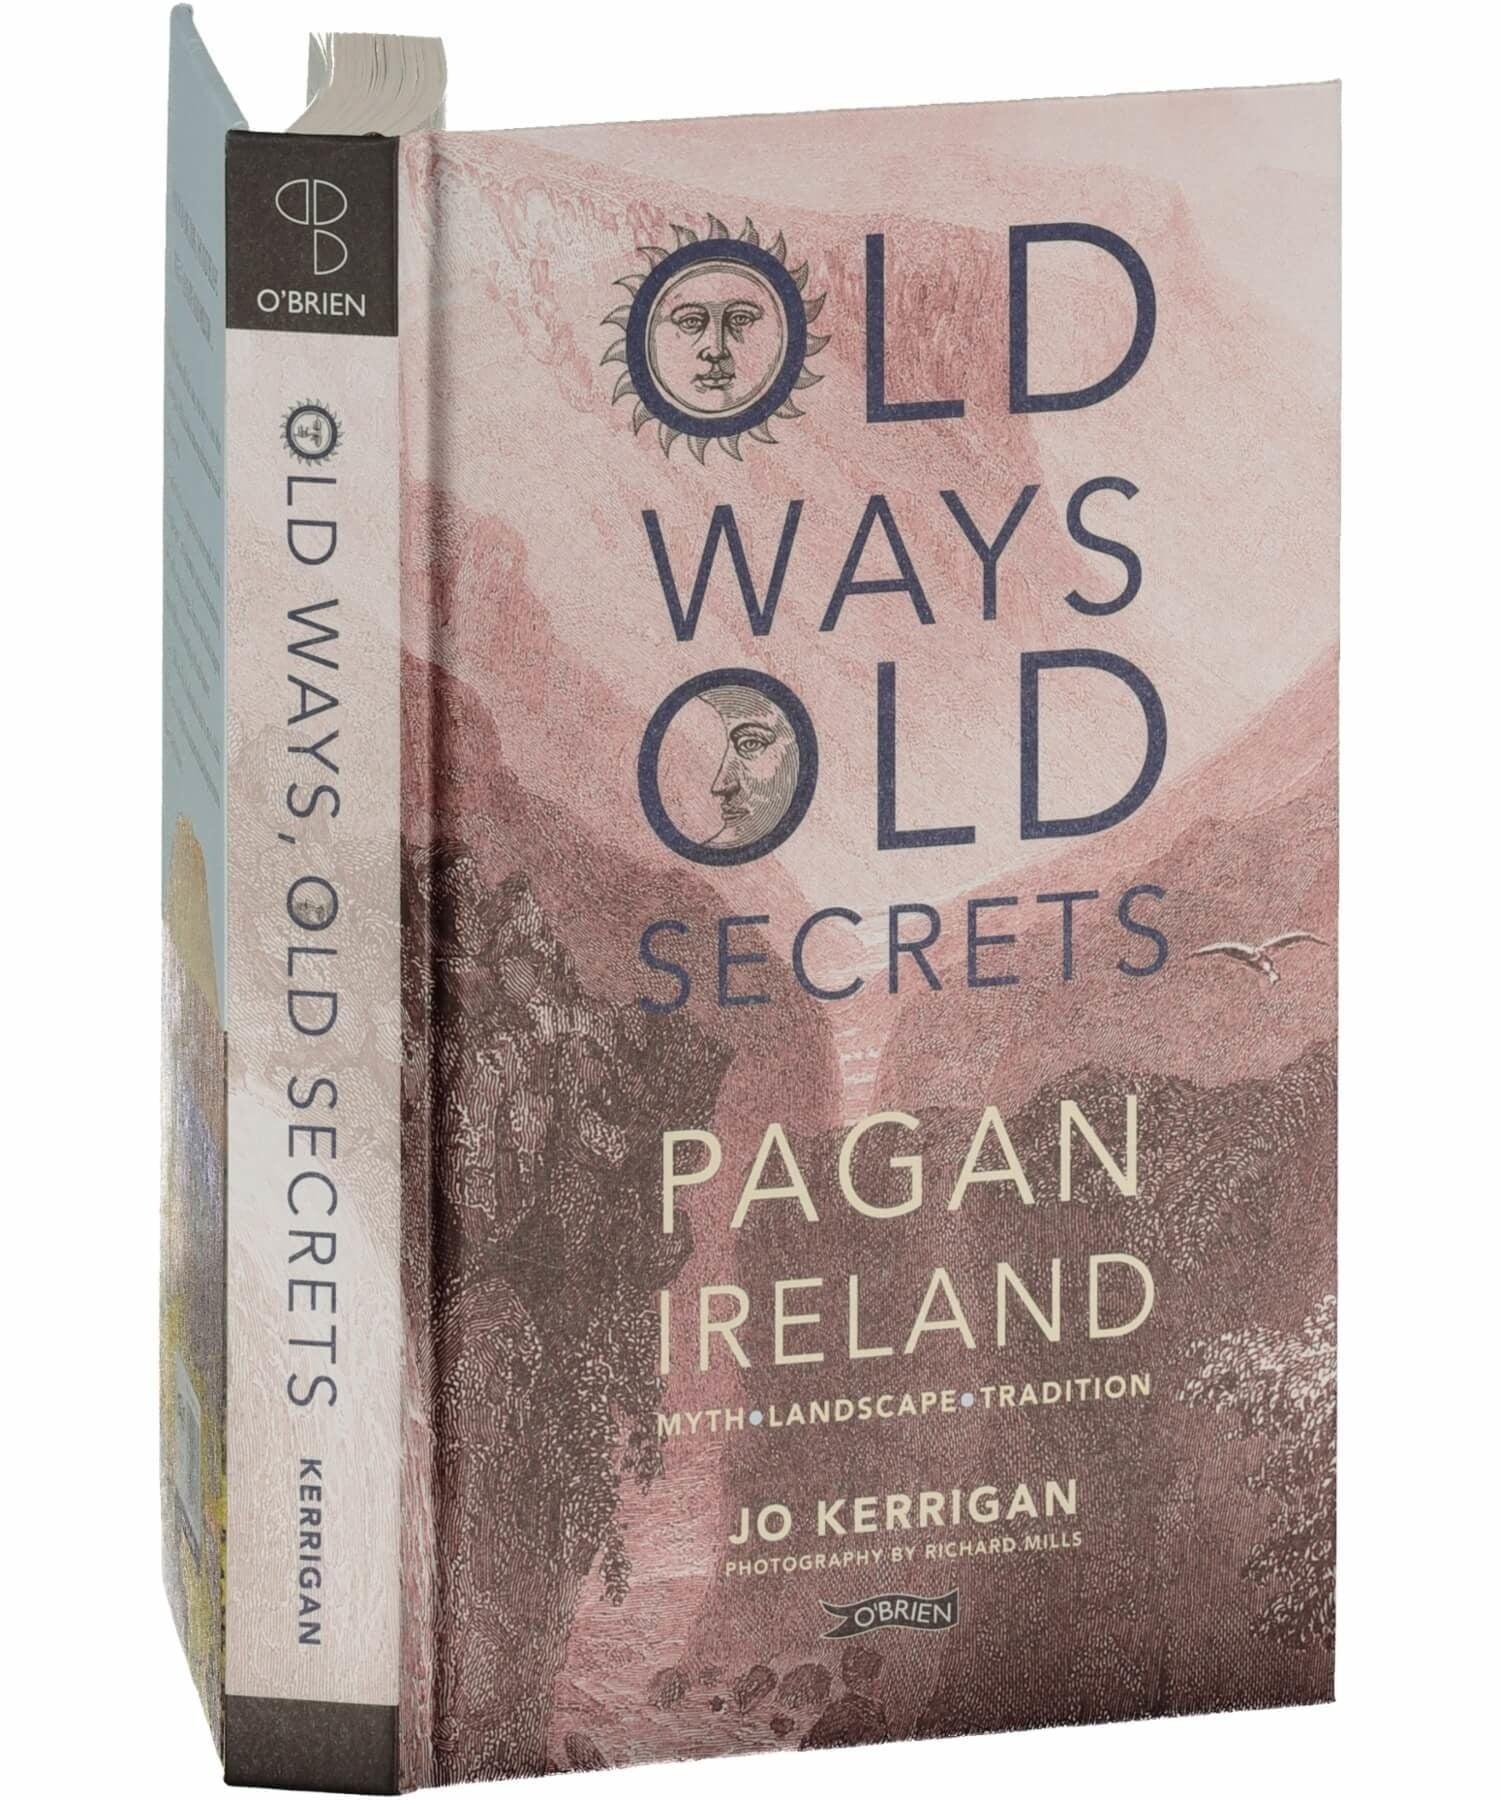 Old Ways Old Secrets - [The O'Brien Press] - Books & Stationery - Irish Gifts